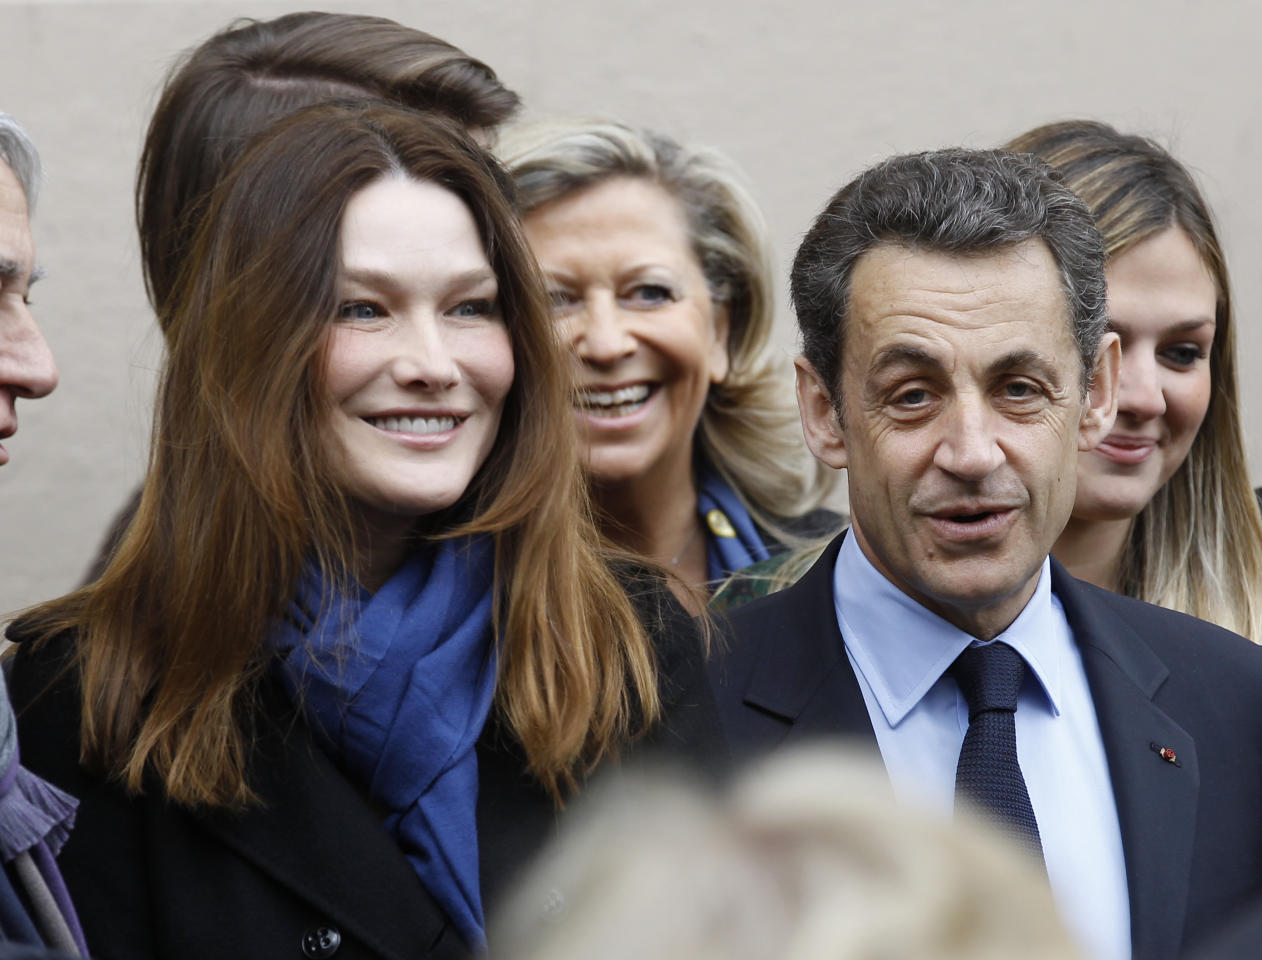 French President and UMP candidate Nicolas Sarkozy and his wife Carla Bruni-Sarkozy leave after casting their votes in the first round of French presidential elections in Paris, France, Sunday, April 22, 2012. (AP Photo/Remy de la Mauviniere)